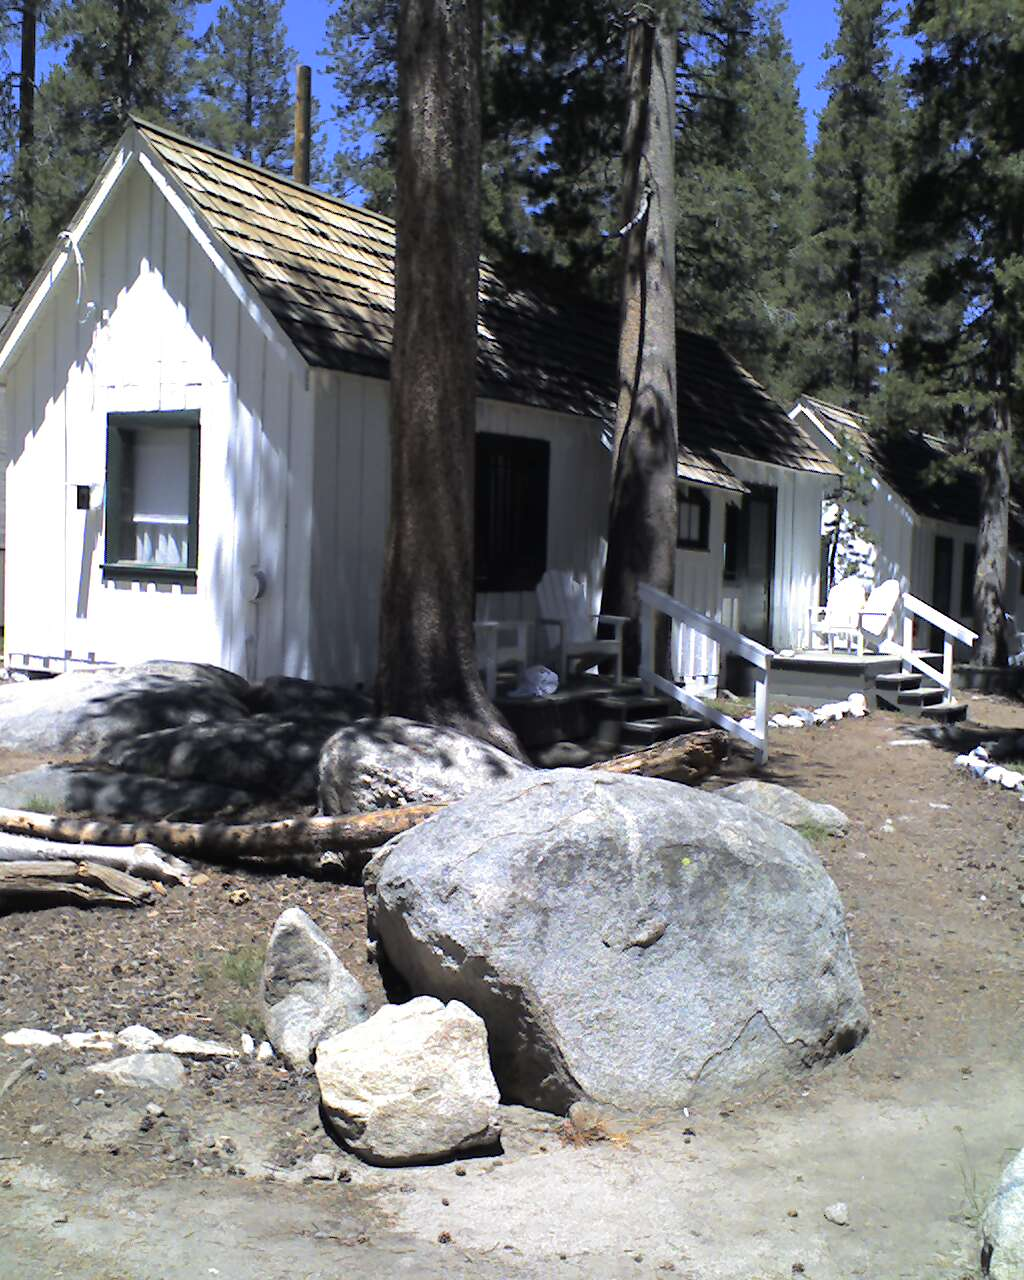 Hawksbill cabin yosemite 39 s white wolf campground for Yosemite park camping cabins